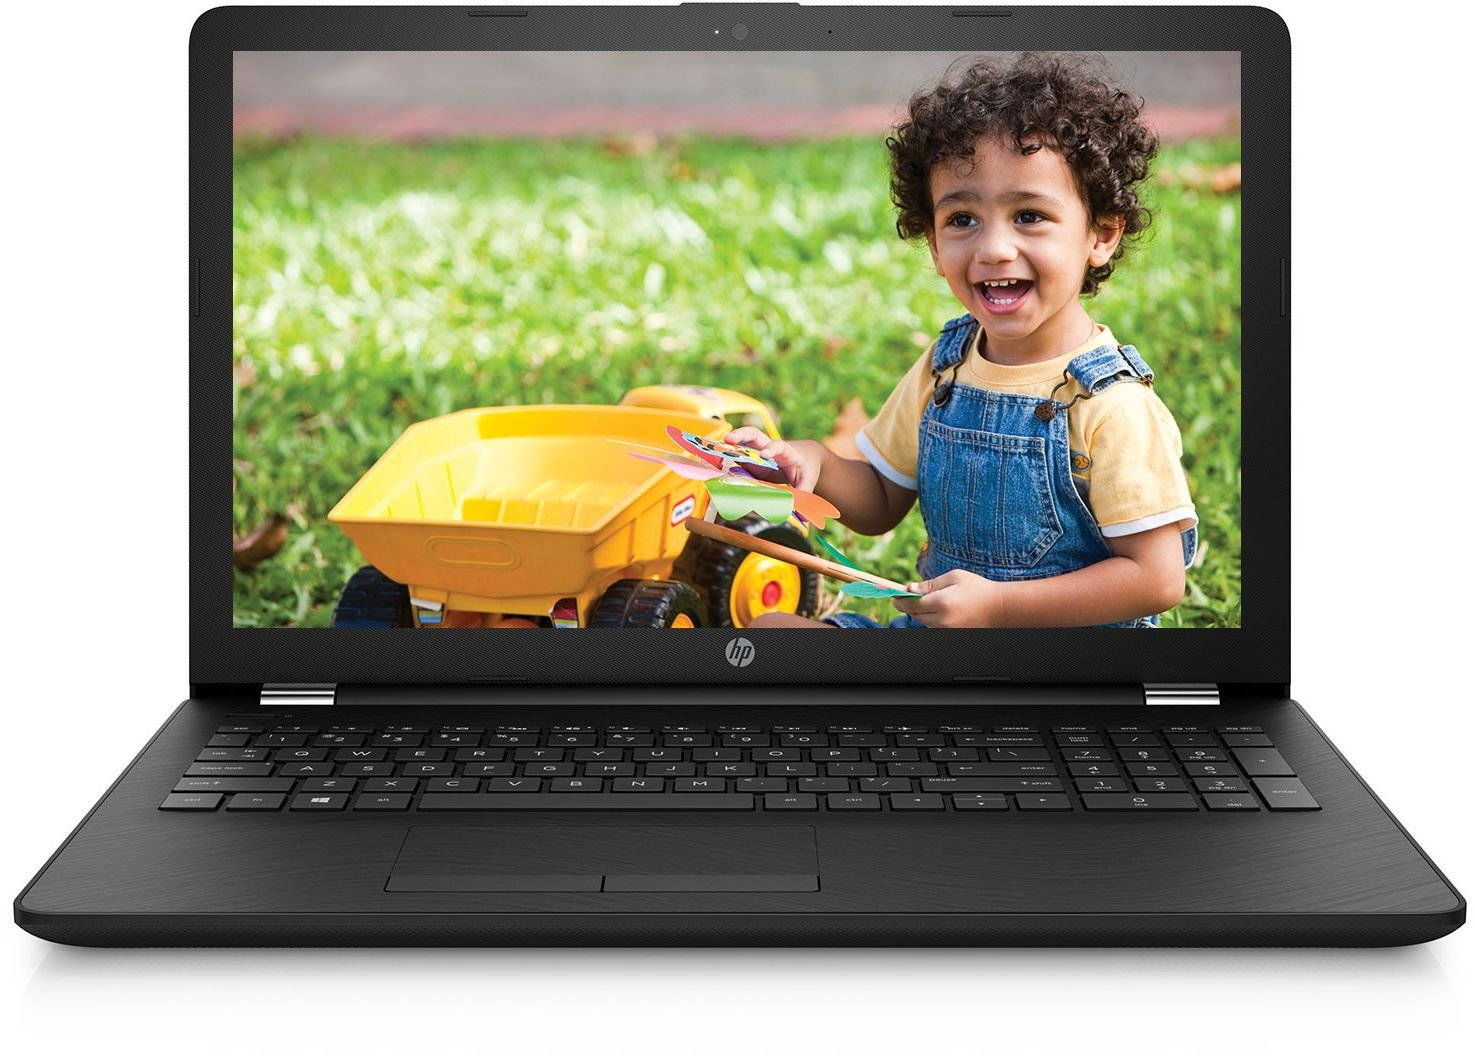 HP 15-BS576TX Notebook Image